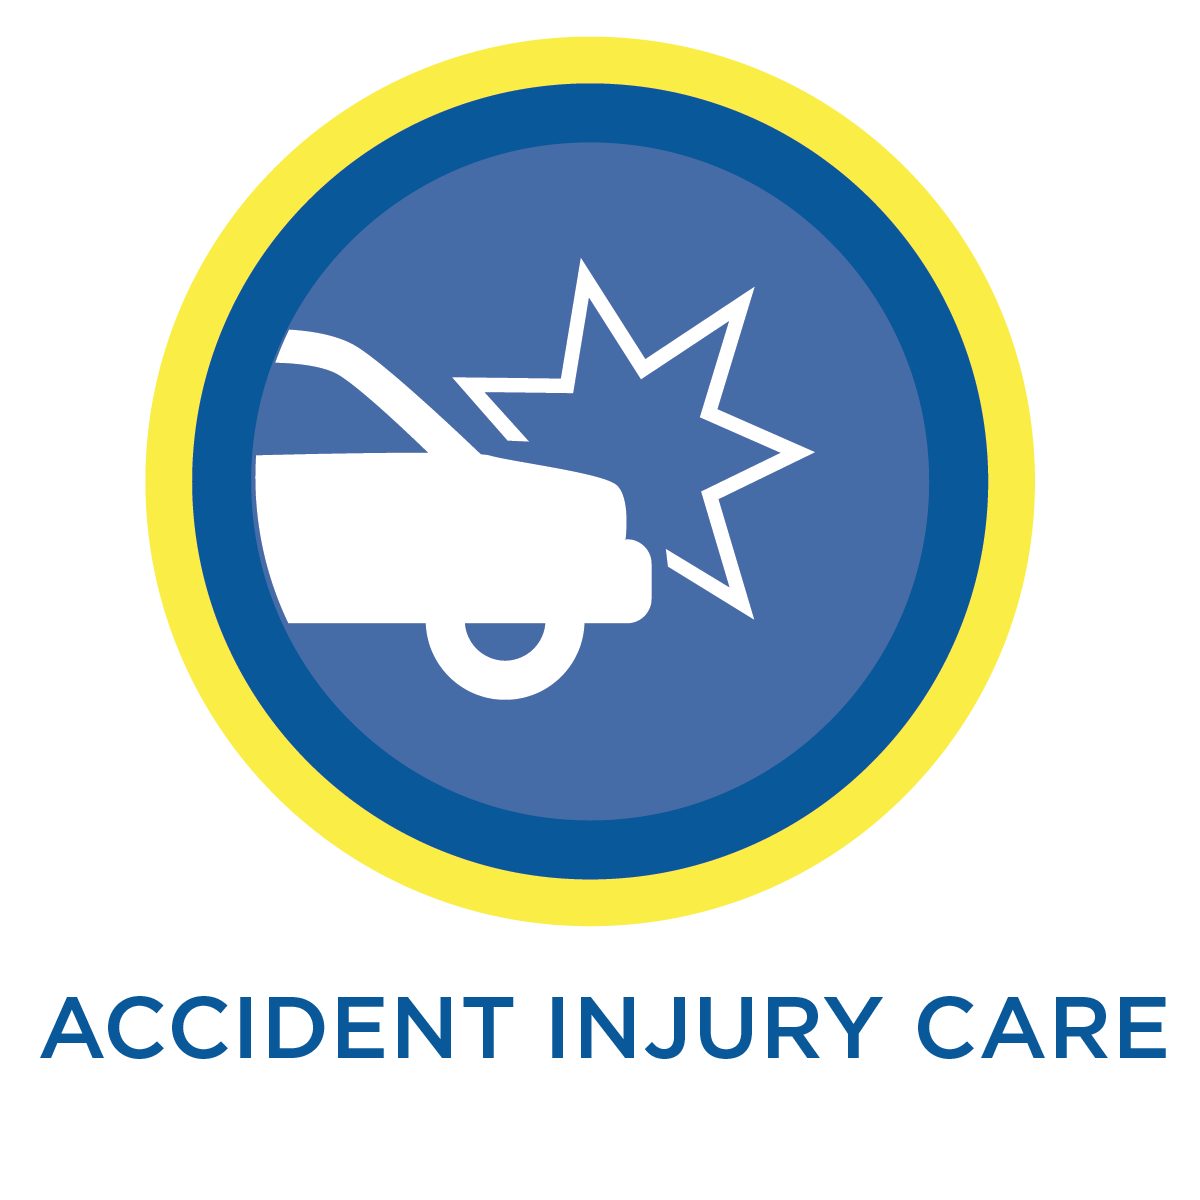 Accident injury treatment center